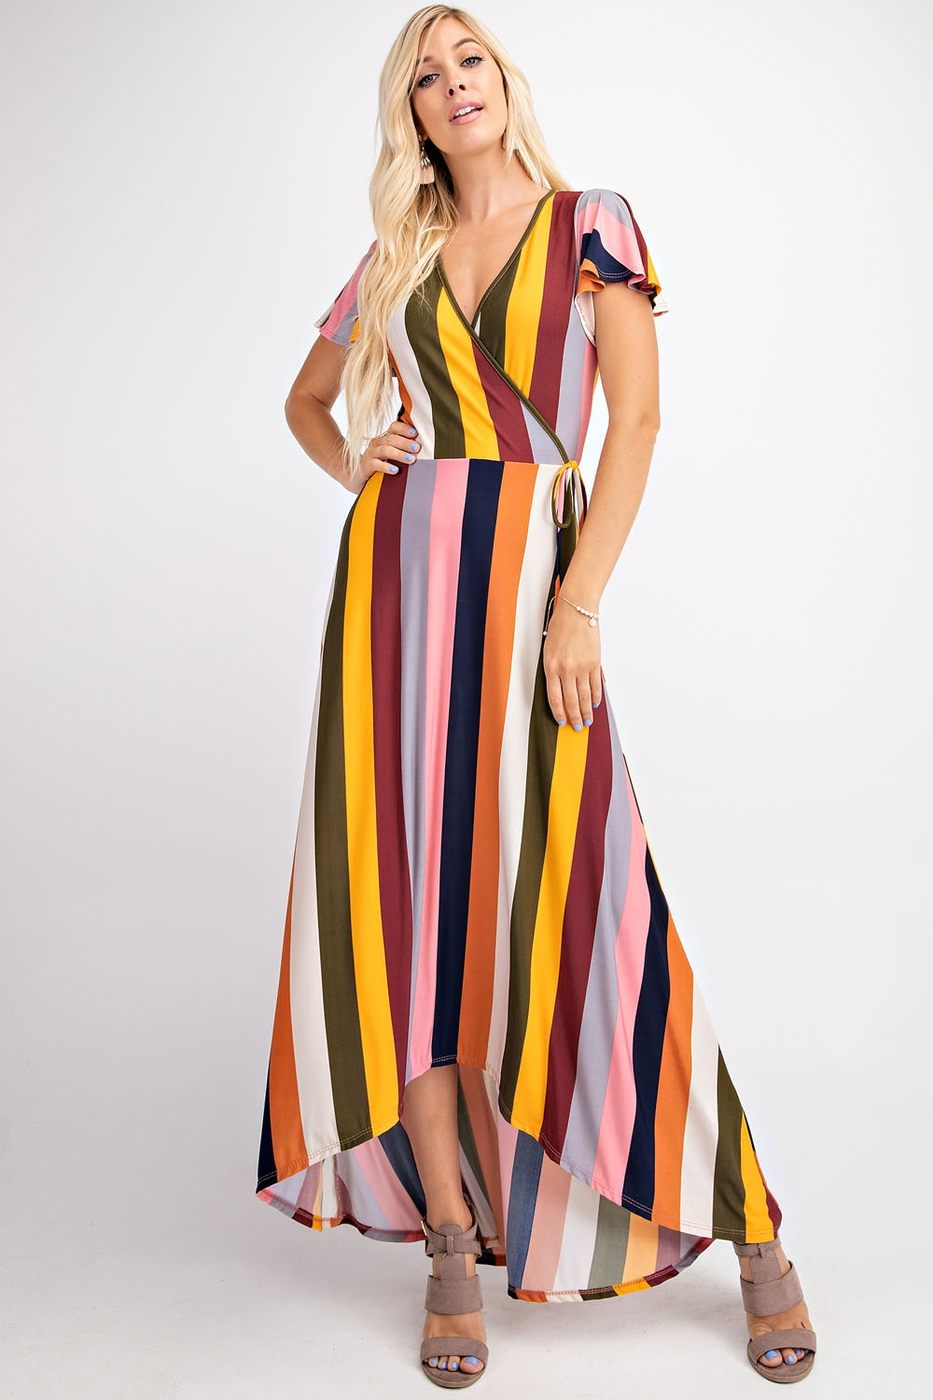 MULTI COLOR VERTICAL STRIP MAXI DRES - orangeshine.com